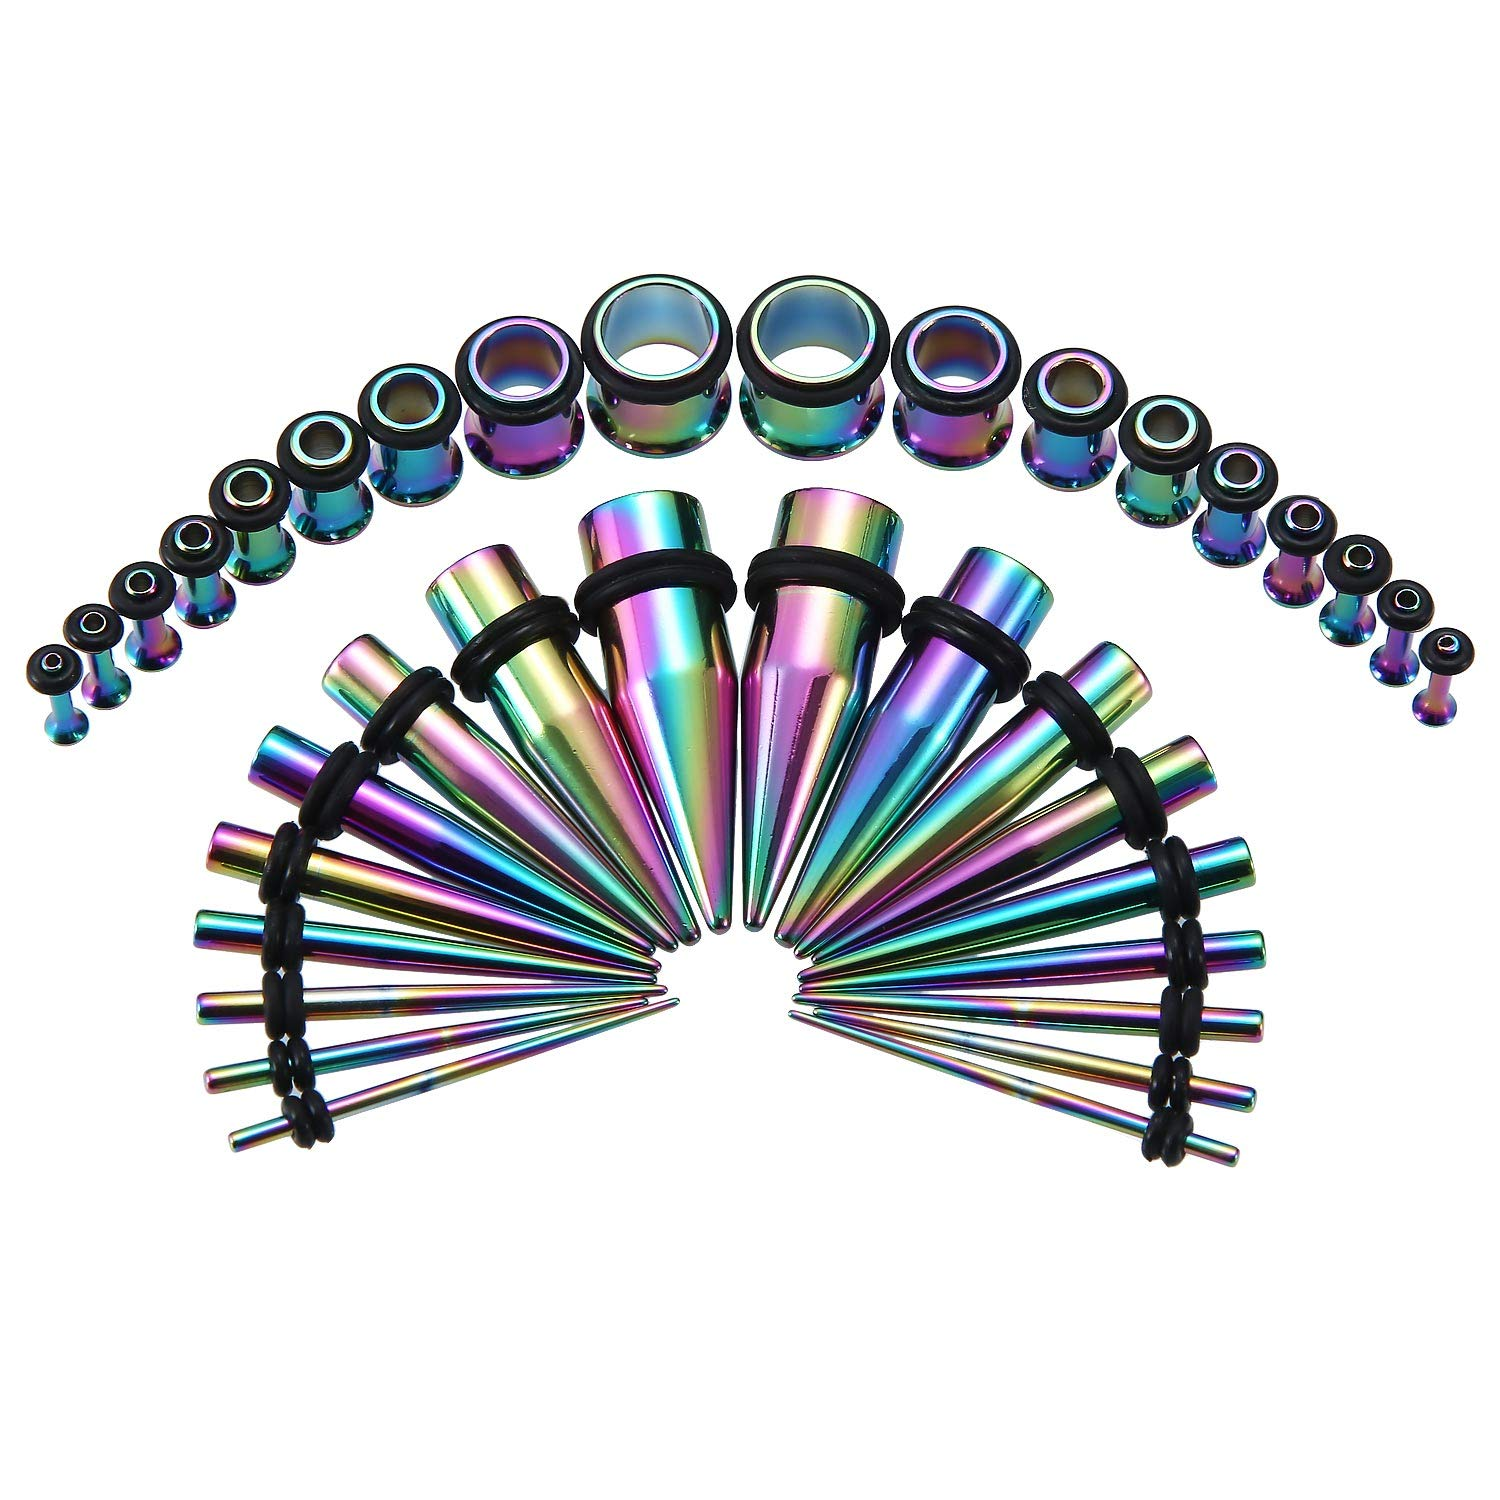 36PCS Ear Gauge Stretching Kit Stainless Steel Tapers and Plugs Set Eyelet 14G-00G Body Piercing Jewelry